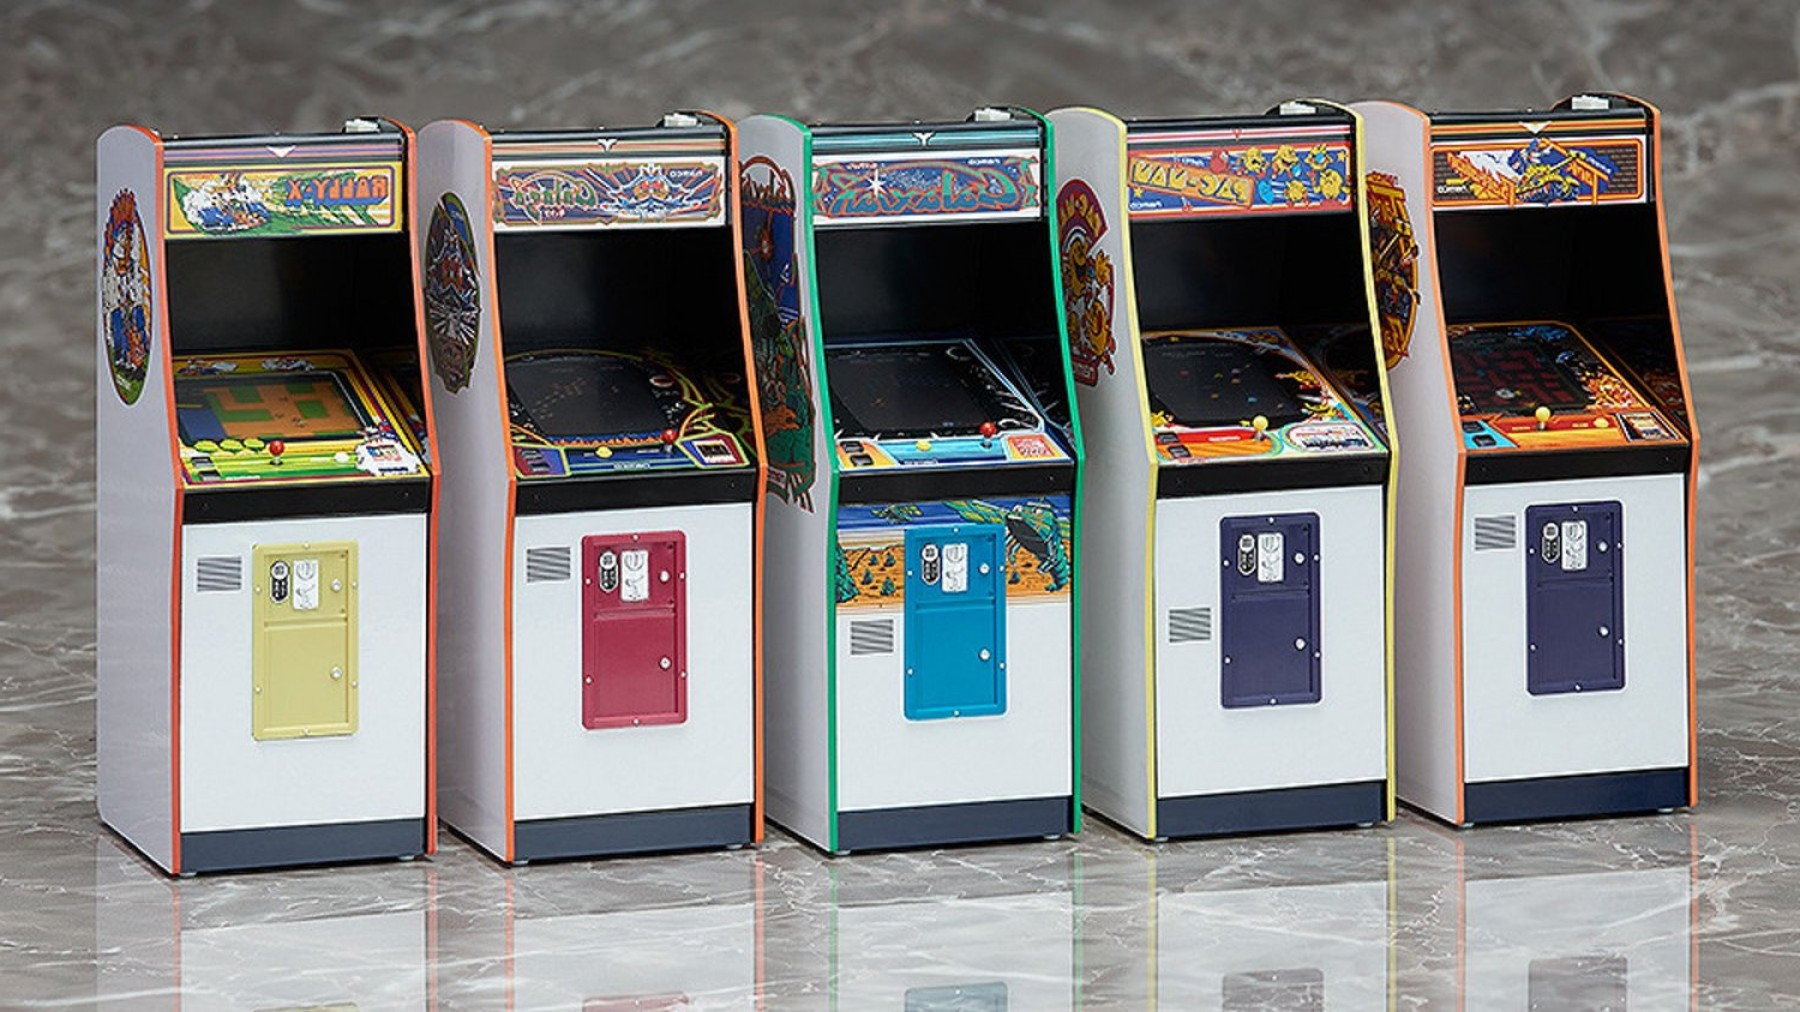 Vector Mini Arcade Machine: These Wall Mounted Arcade Cabinets Are Radical